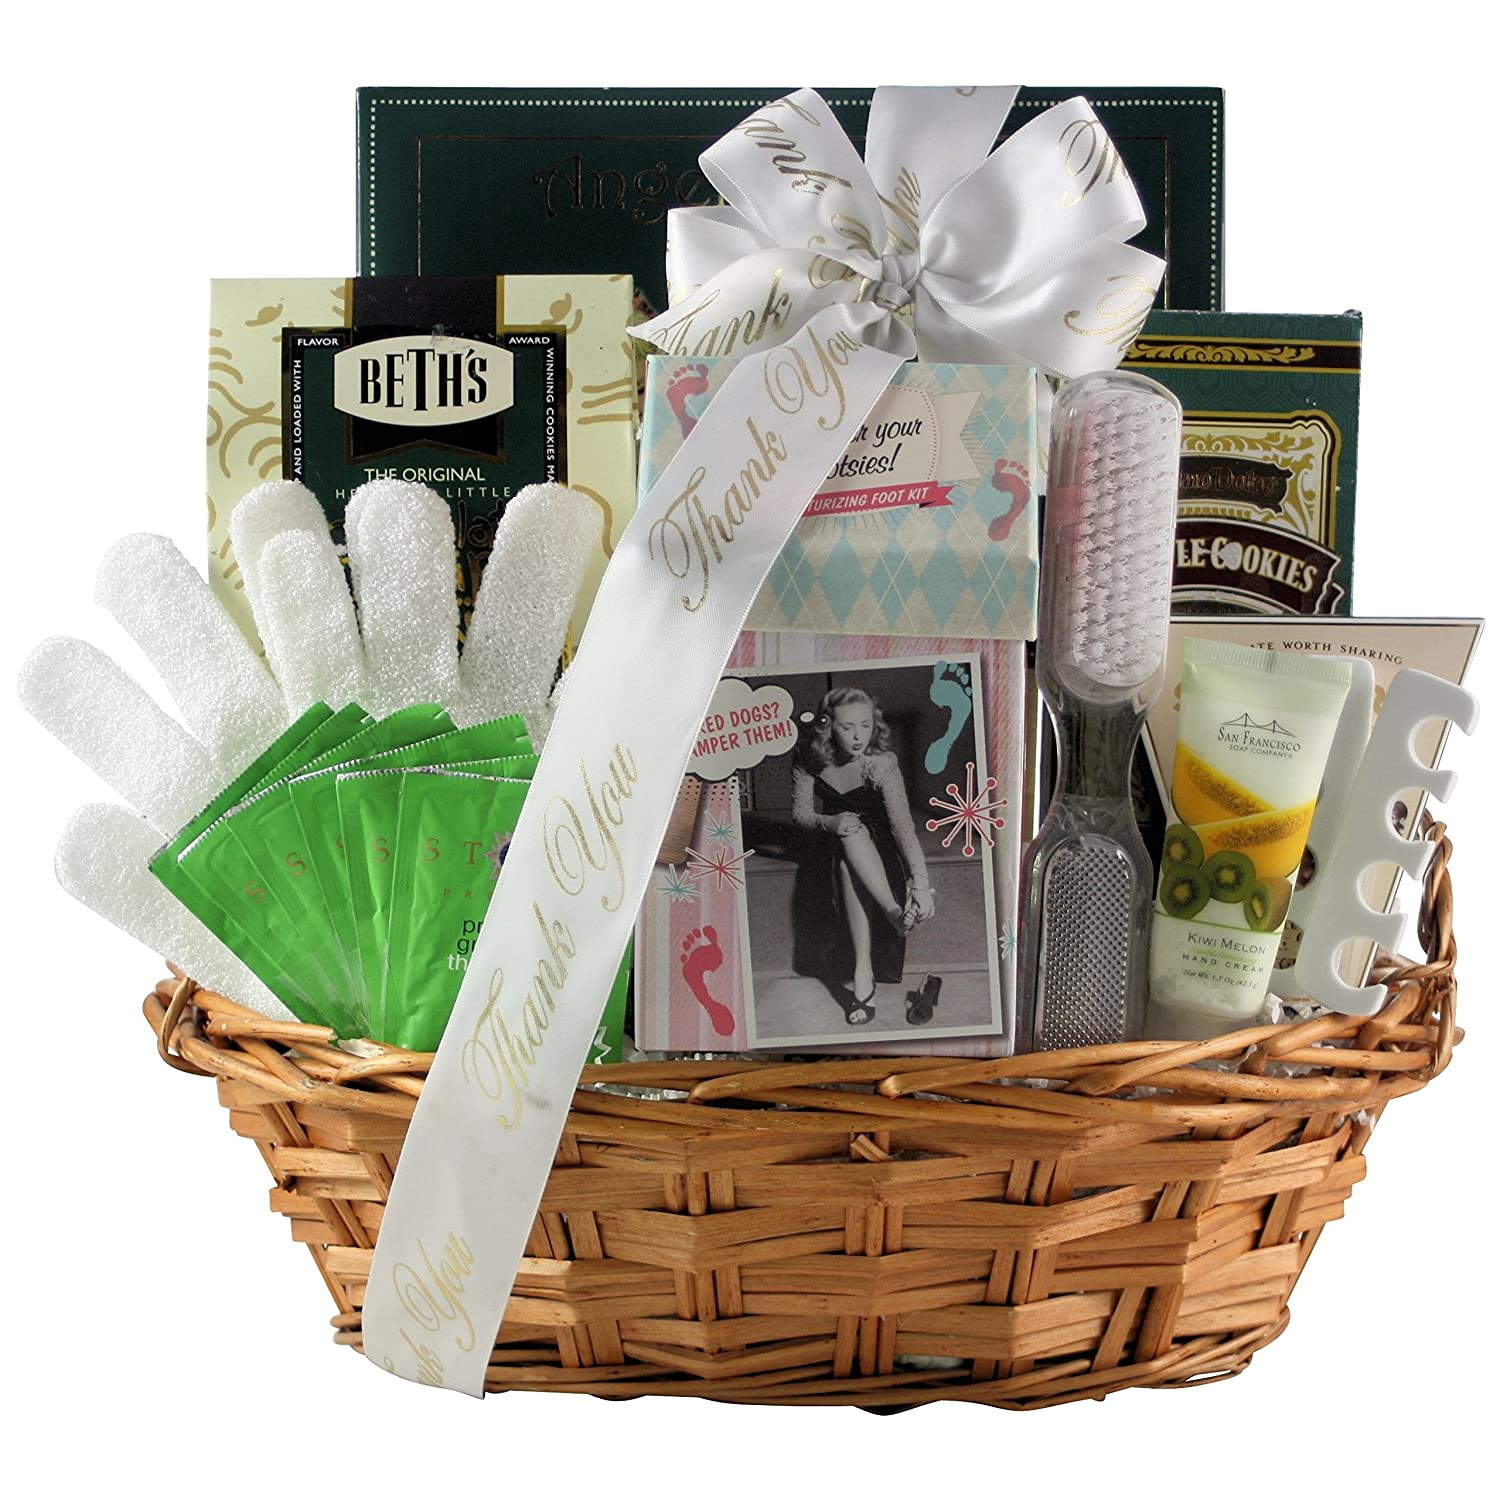 Amazon GreatArrivals Gift Baskets Hands And Feet Specialty Spa Bathand Body Birthday Basket 4 Pound Grocery Gourmet Food